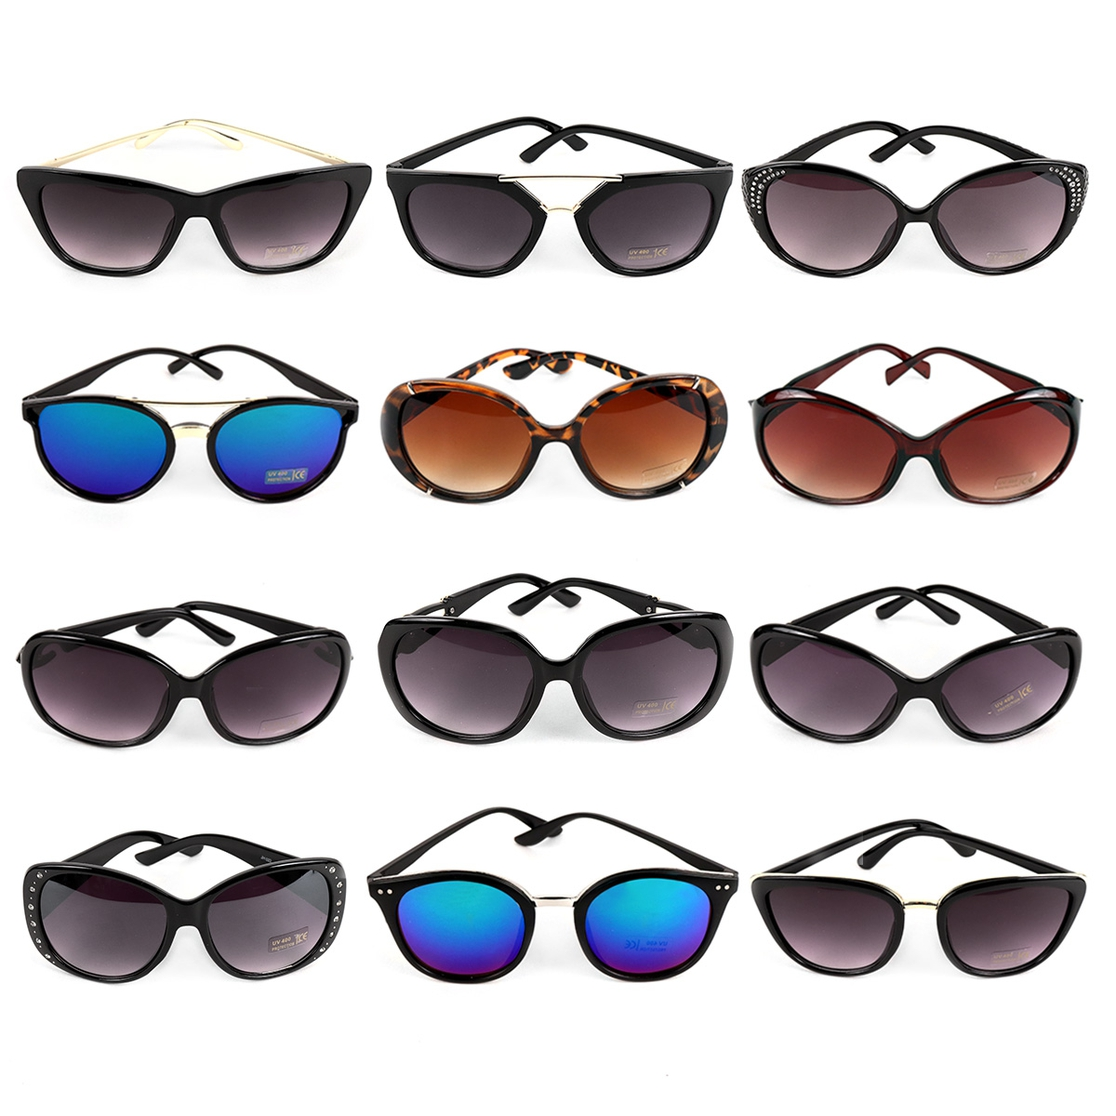 12pc Assorted Fashion Sunglasses - orangeshine.com